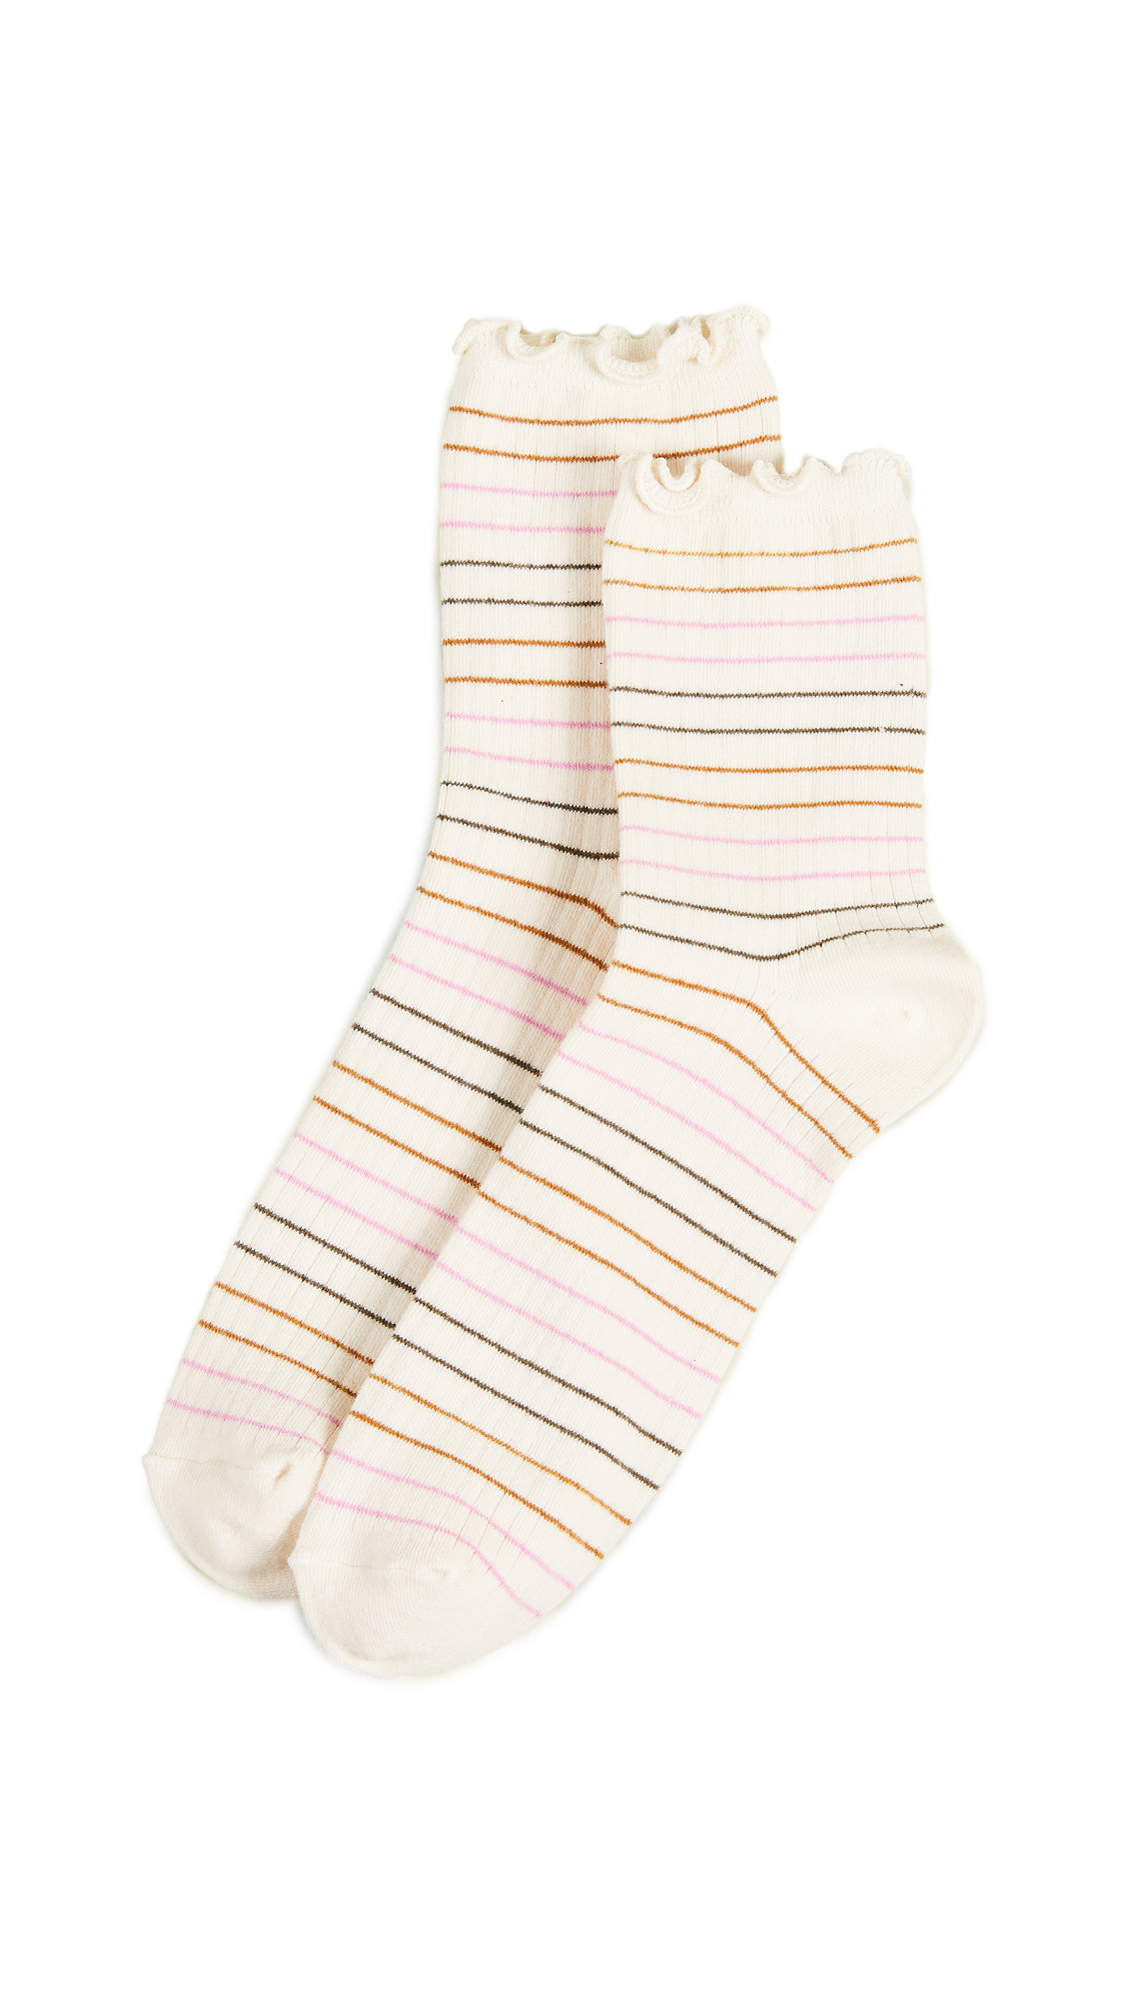 Madewell Simple Stripe Lettuce Socks In Cream/Multi